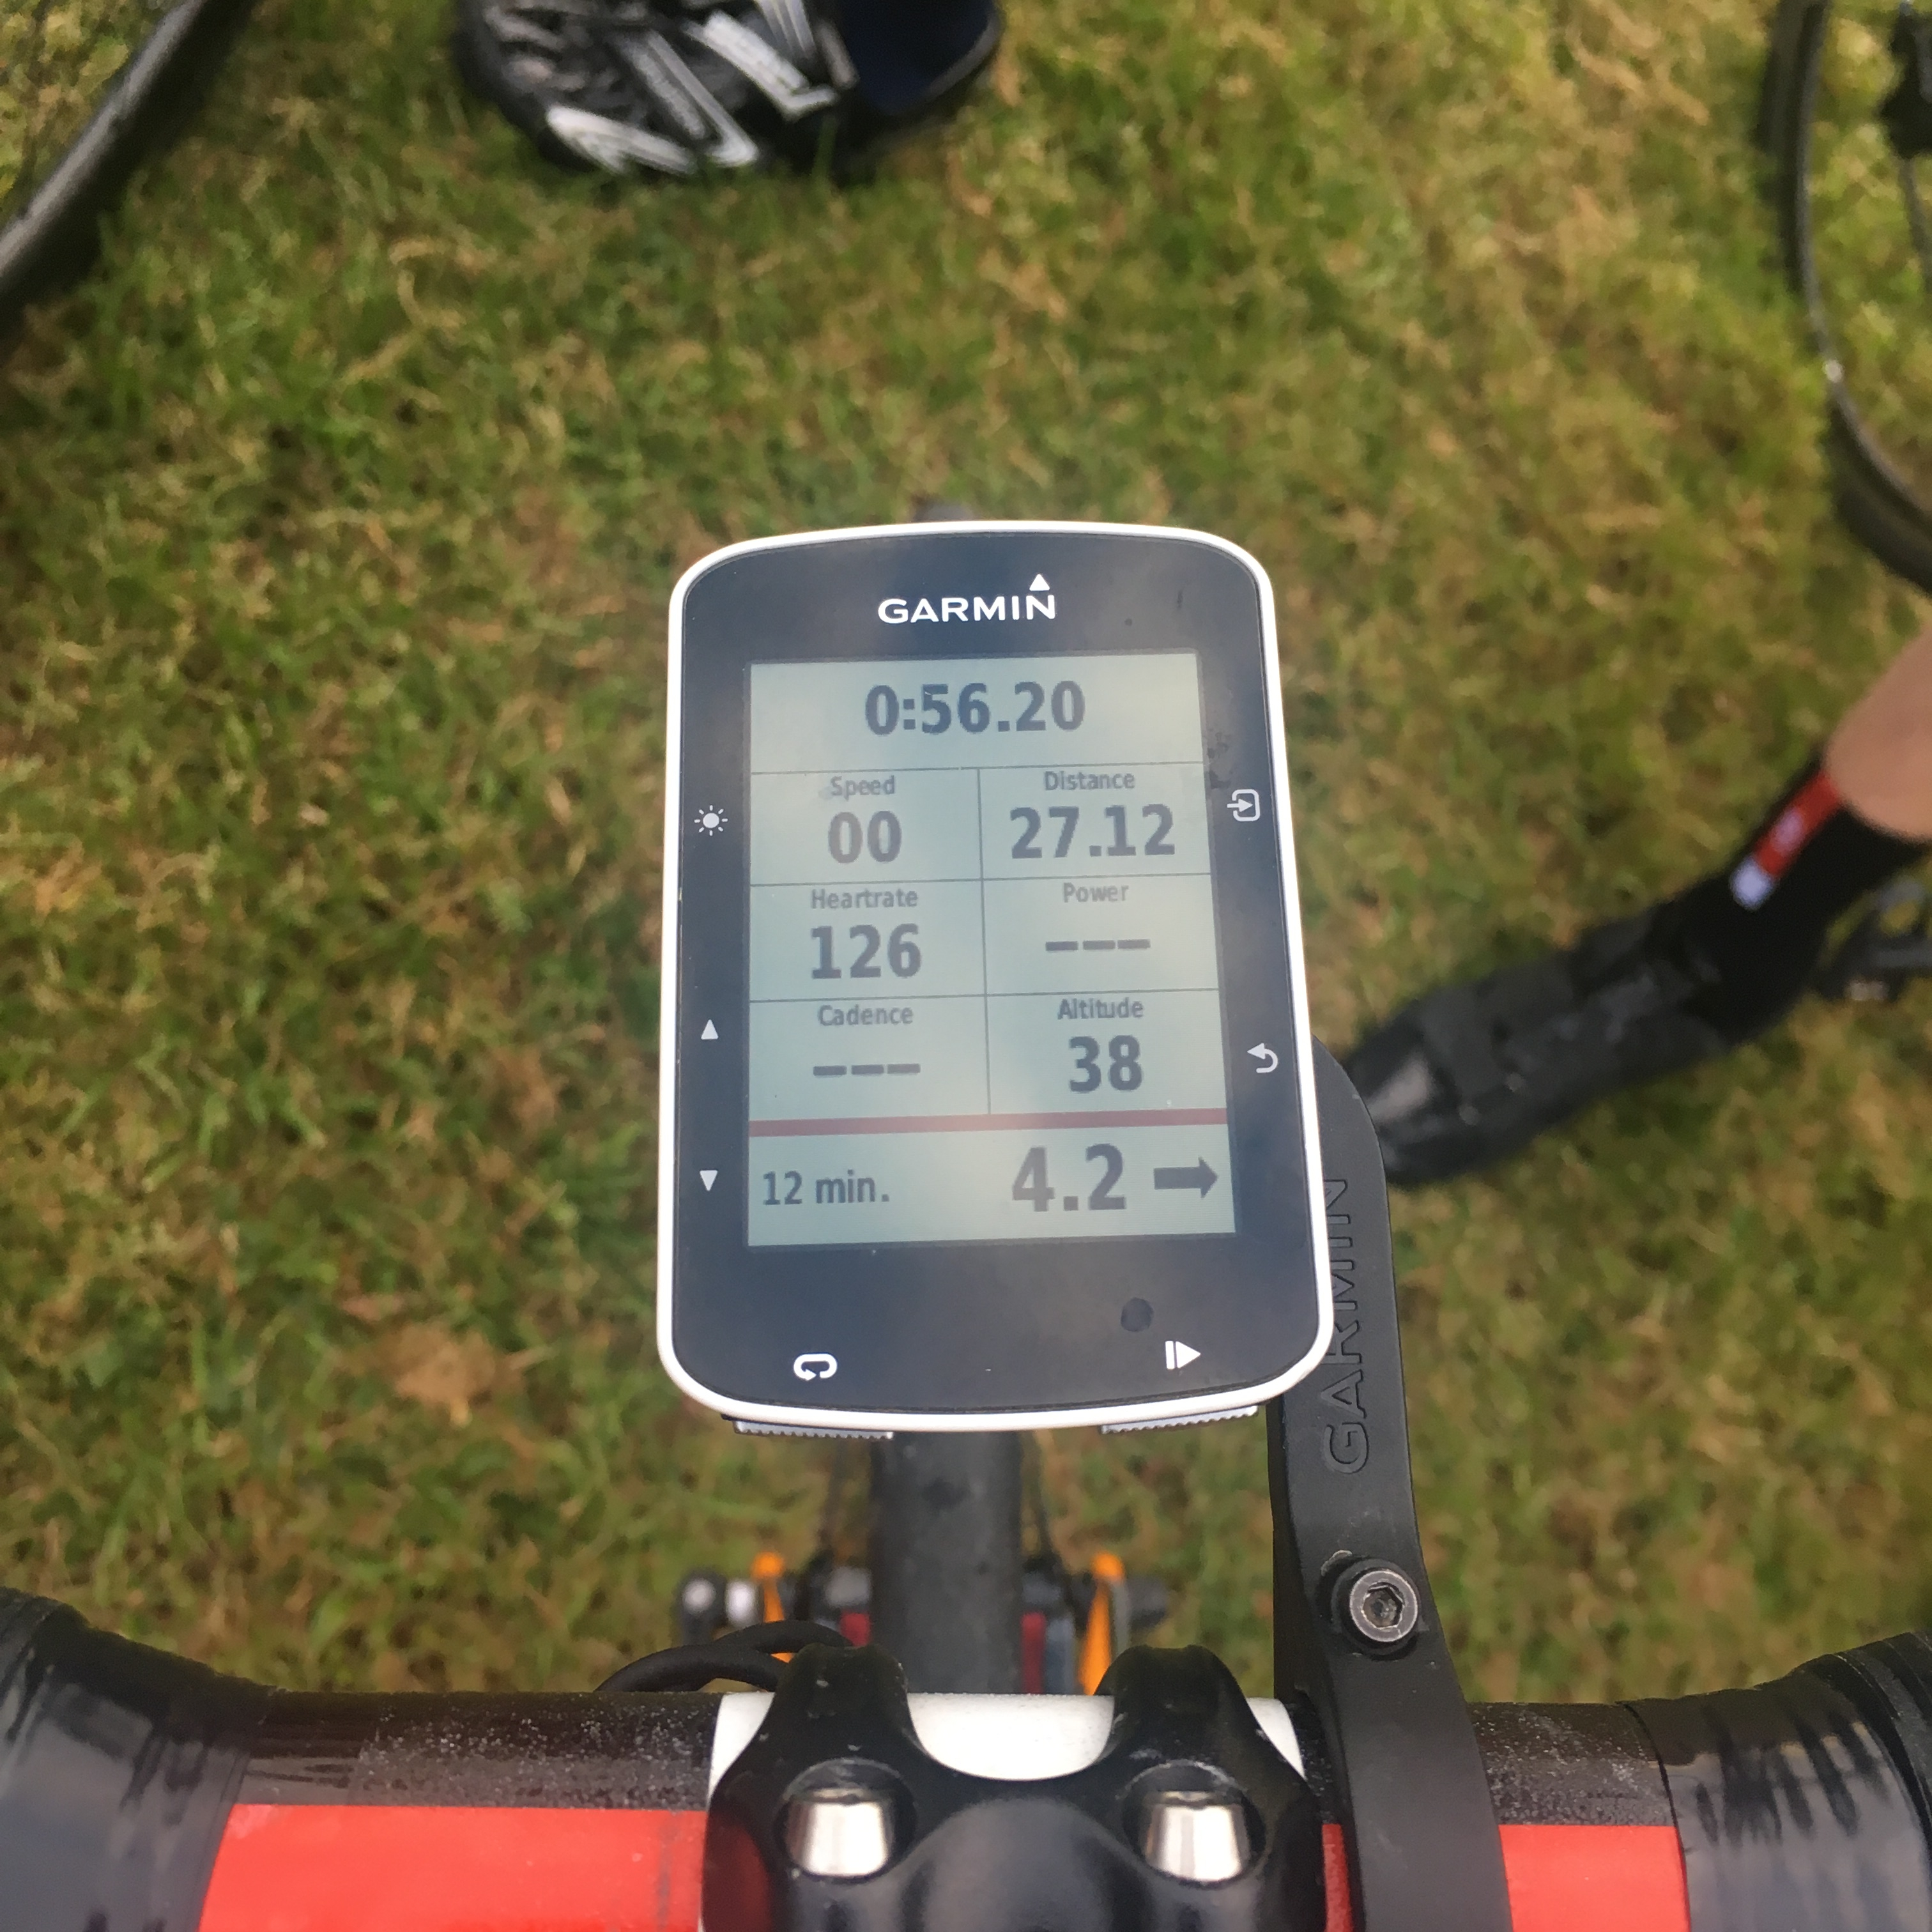 I work in tech, so getting this working was something I was keen on. This is my bike computer which is actually showing my current blood glucose level and trendline (bottom of screen). Technology is making diabetes management close to real time!